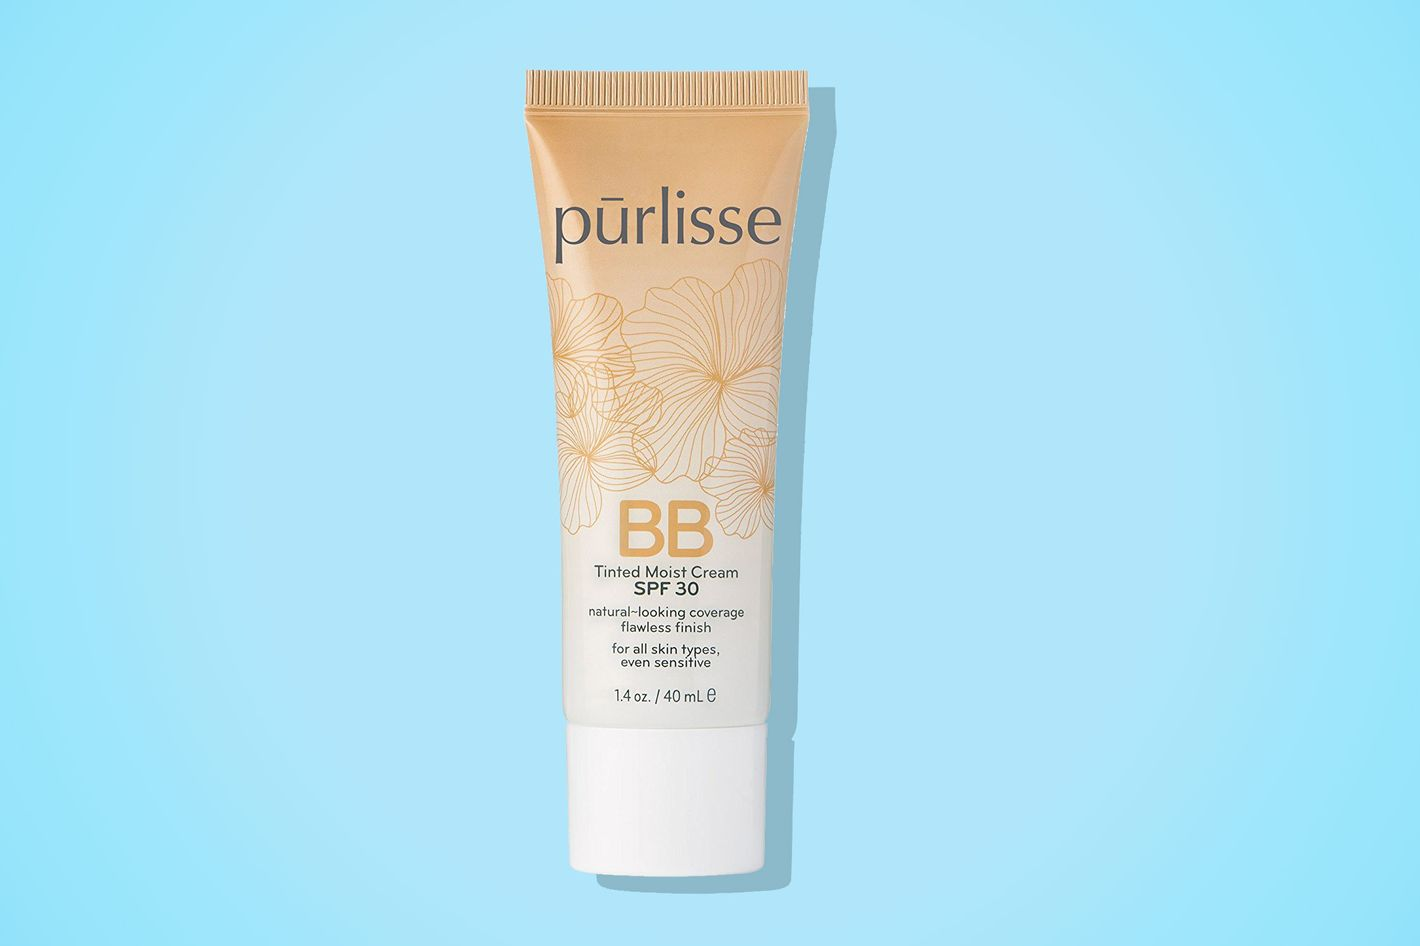 Pur-lisse BB Tinted Moist Cream